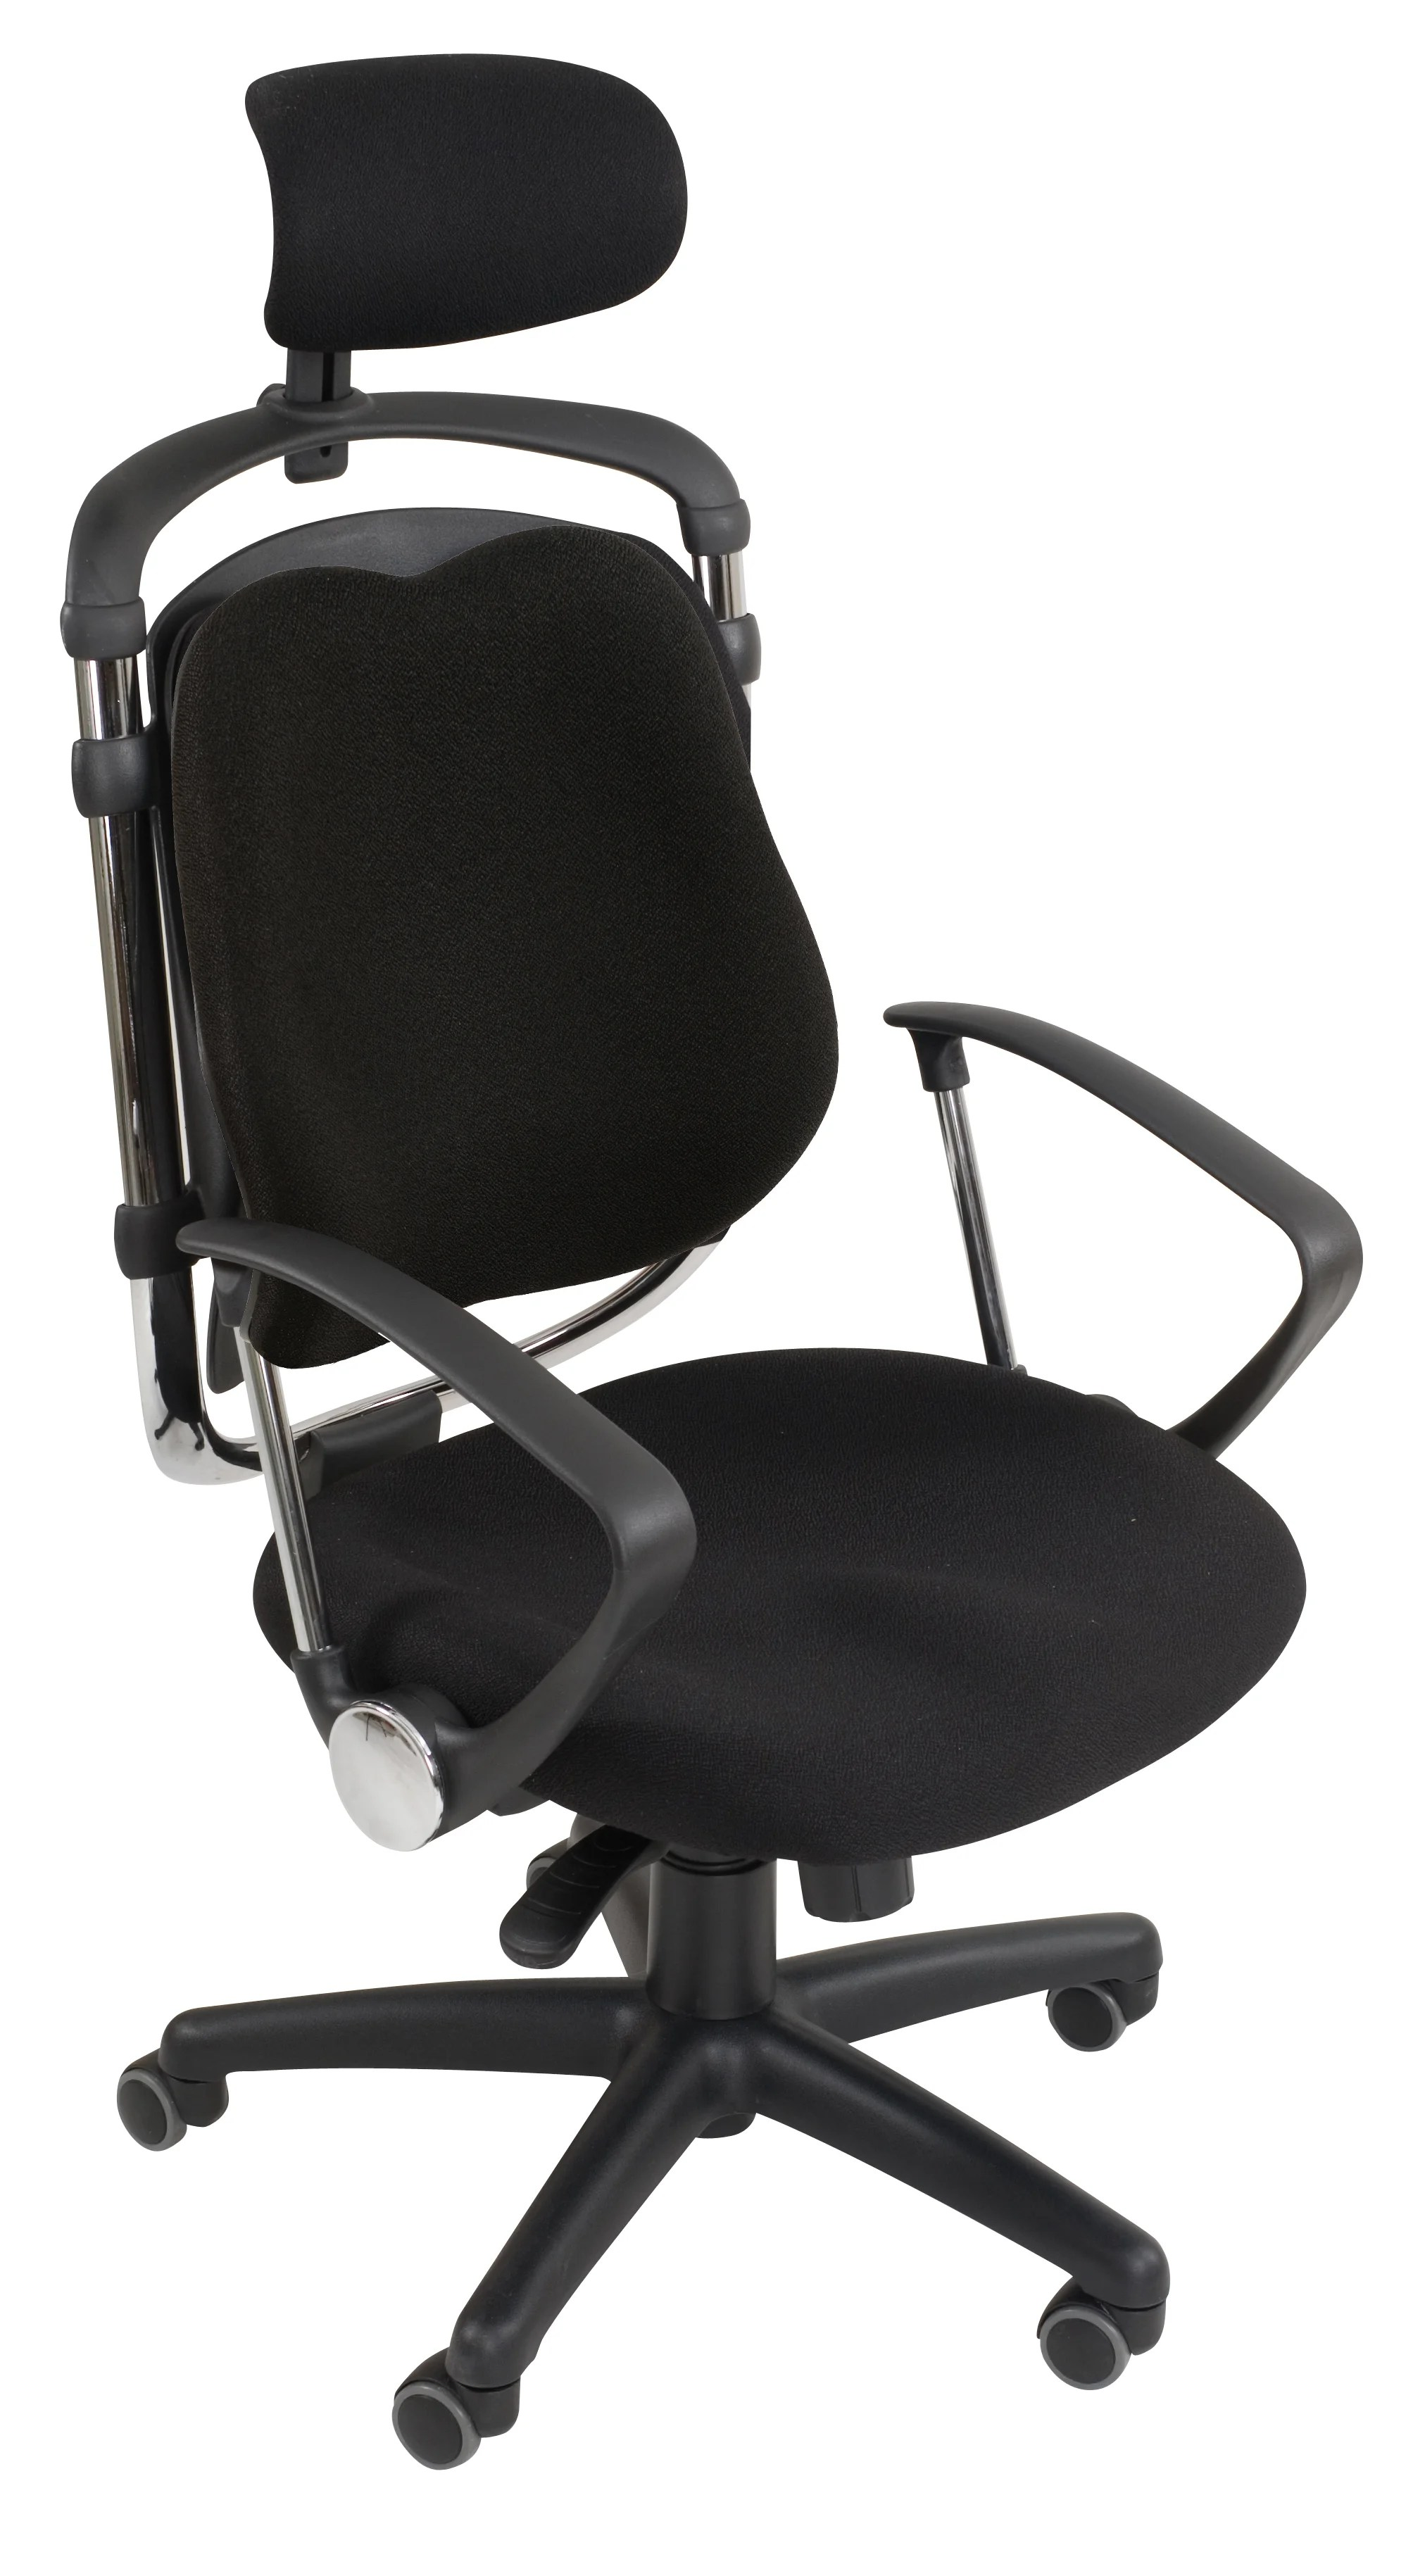 Office Chair Posture Posture Perfect Mid Back Desk Chair